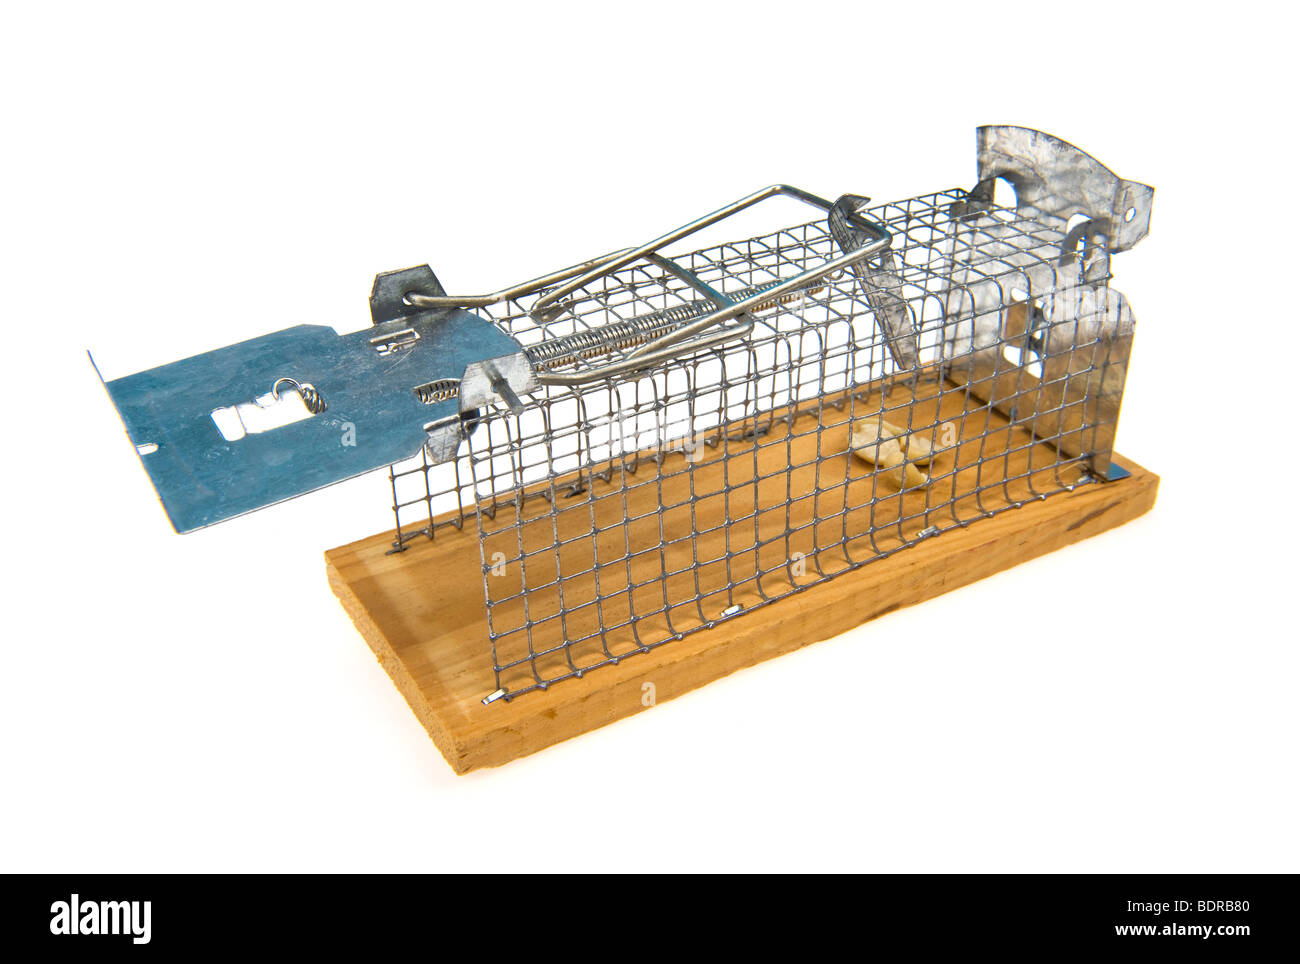 trap mousetrap livetrap live mouse snare trapping entrap fall into a trap metal wood wooden catch alive catching - Stock Image